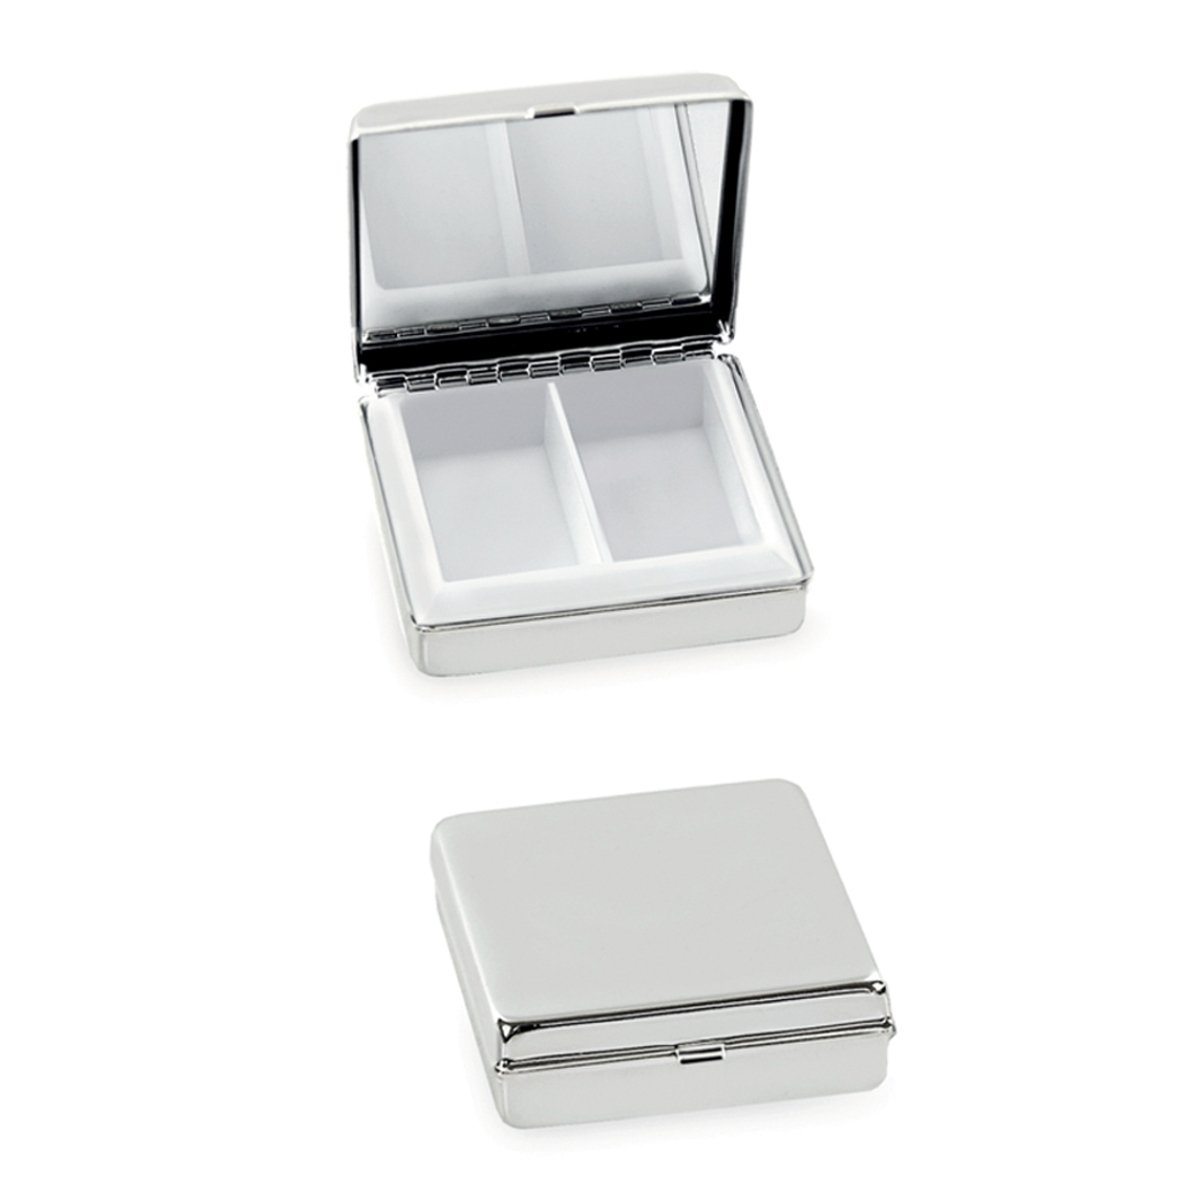 Silberkanne Pill Box Medica 5 X 5 X 1.5 cm Silver Plated And Durable Product